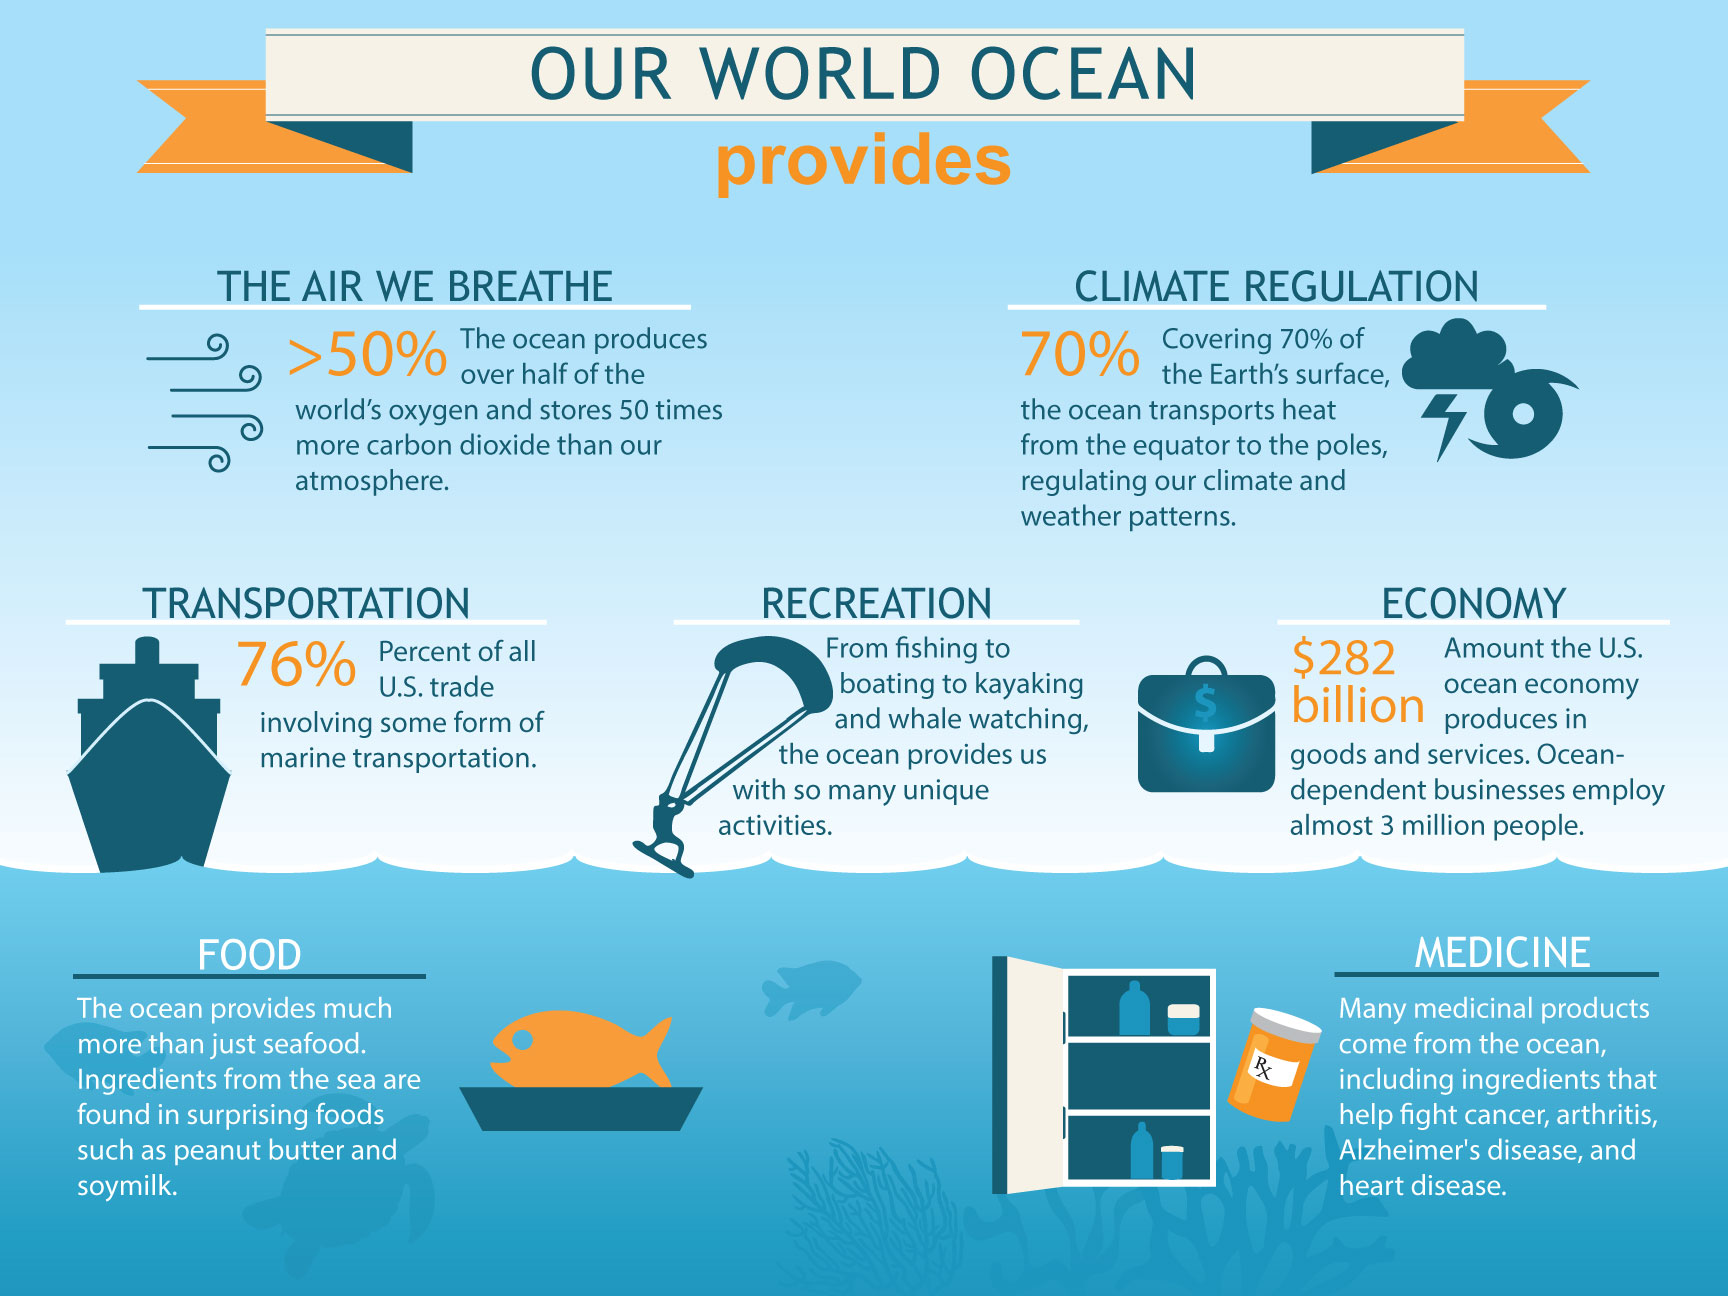 Why Should We Care About The Ocean